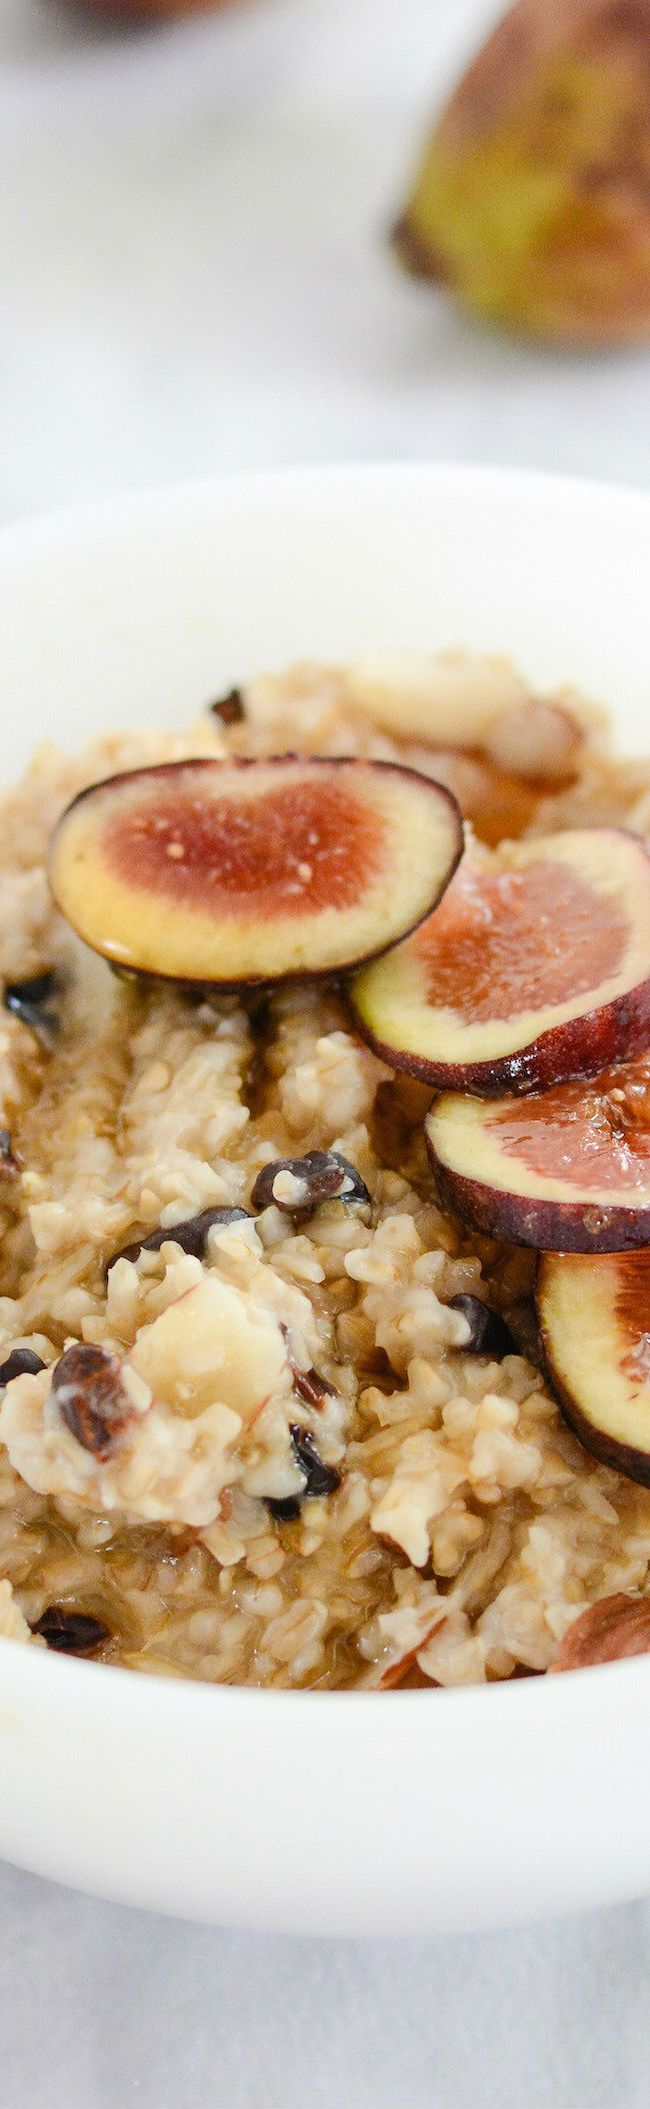 healthy-but-delicious-gluten-free-recipes-03